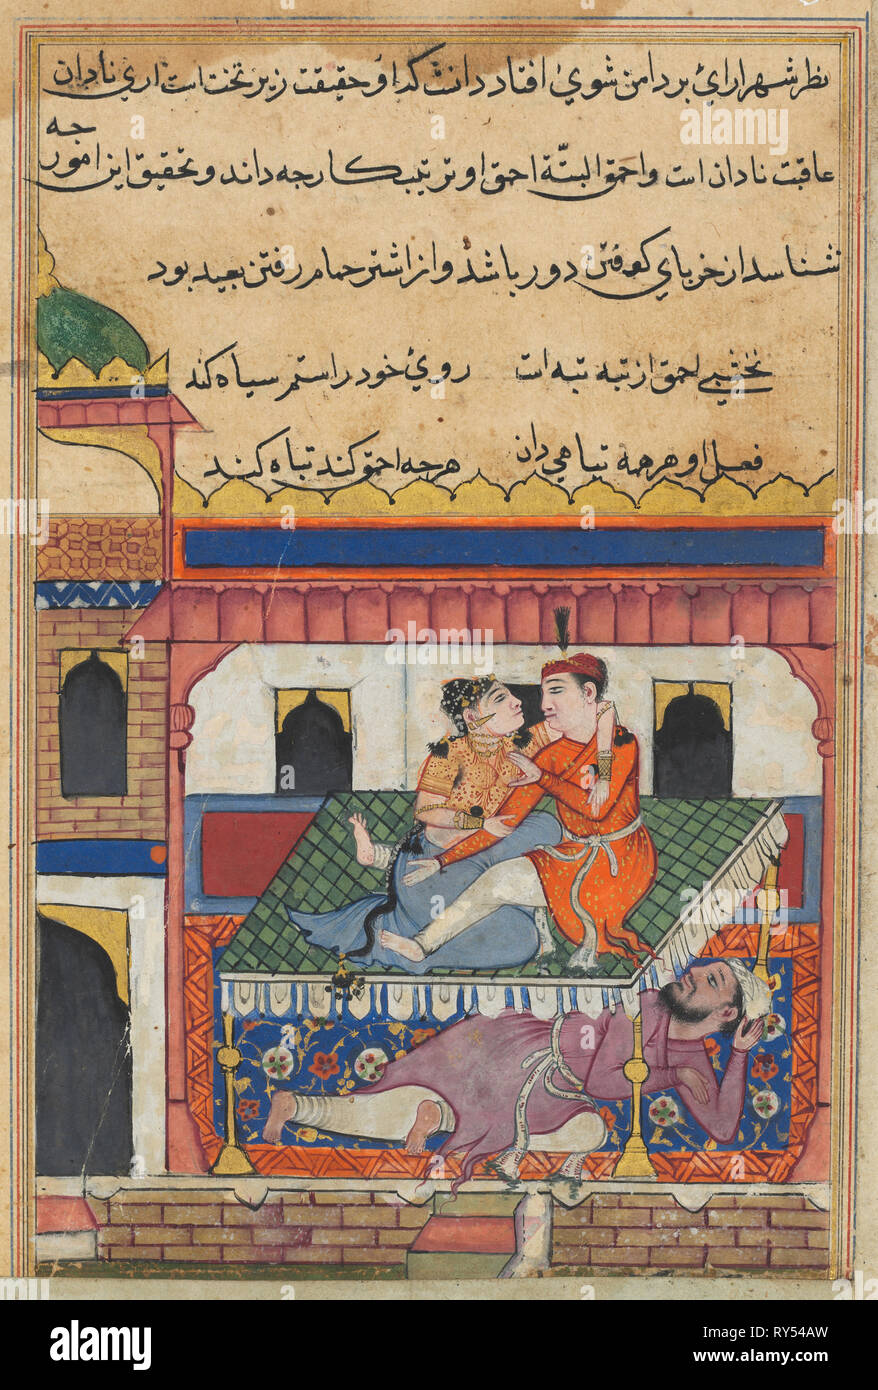 Page from Tales of a Parrot (Tuti-nama): Fortieth night: Shahr-Arai and her lover dallying on a bed beneath which is concealed her husband, c. 1560. India, Mughal, Reign of Akbar, 16th century. Opaque watercolor, ink and gold on paper - Stock Image